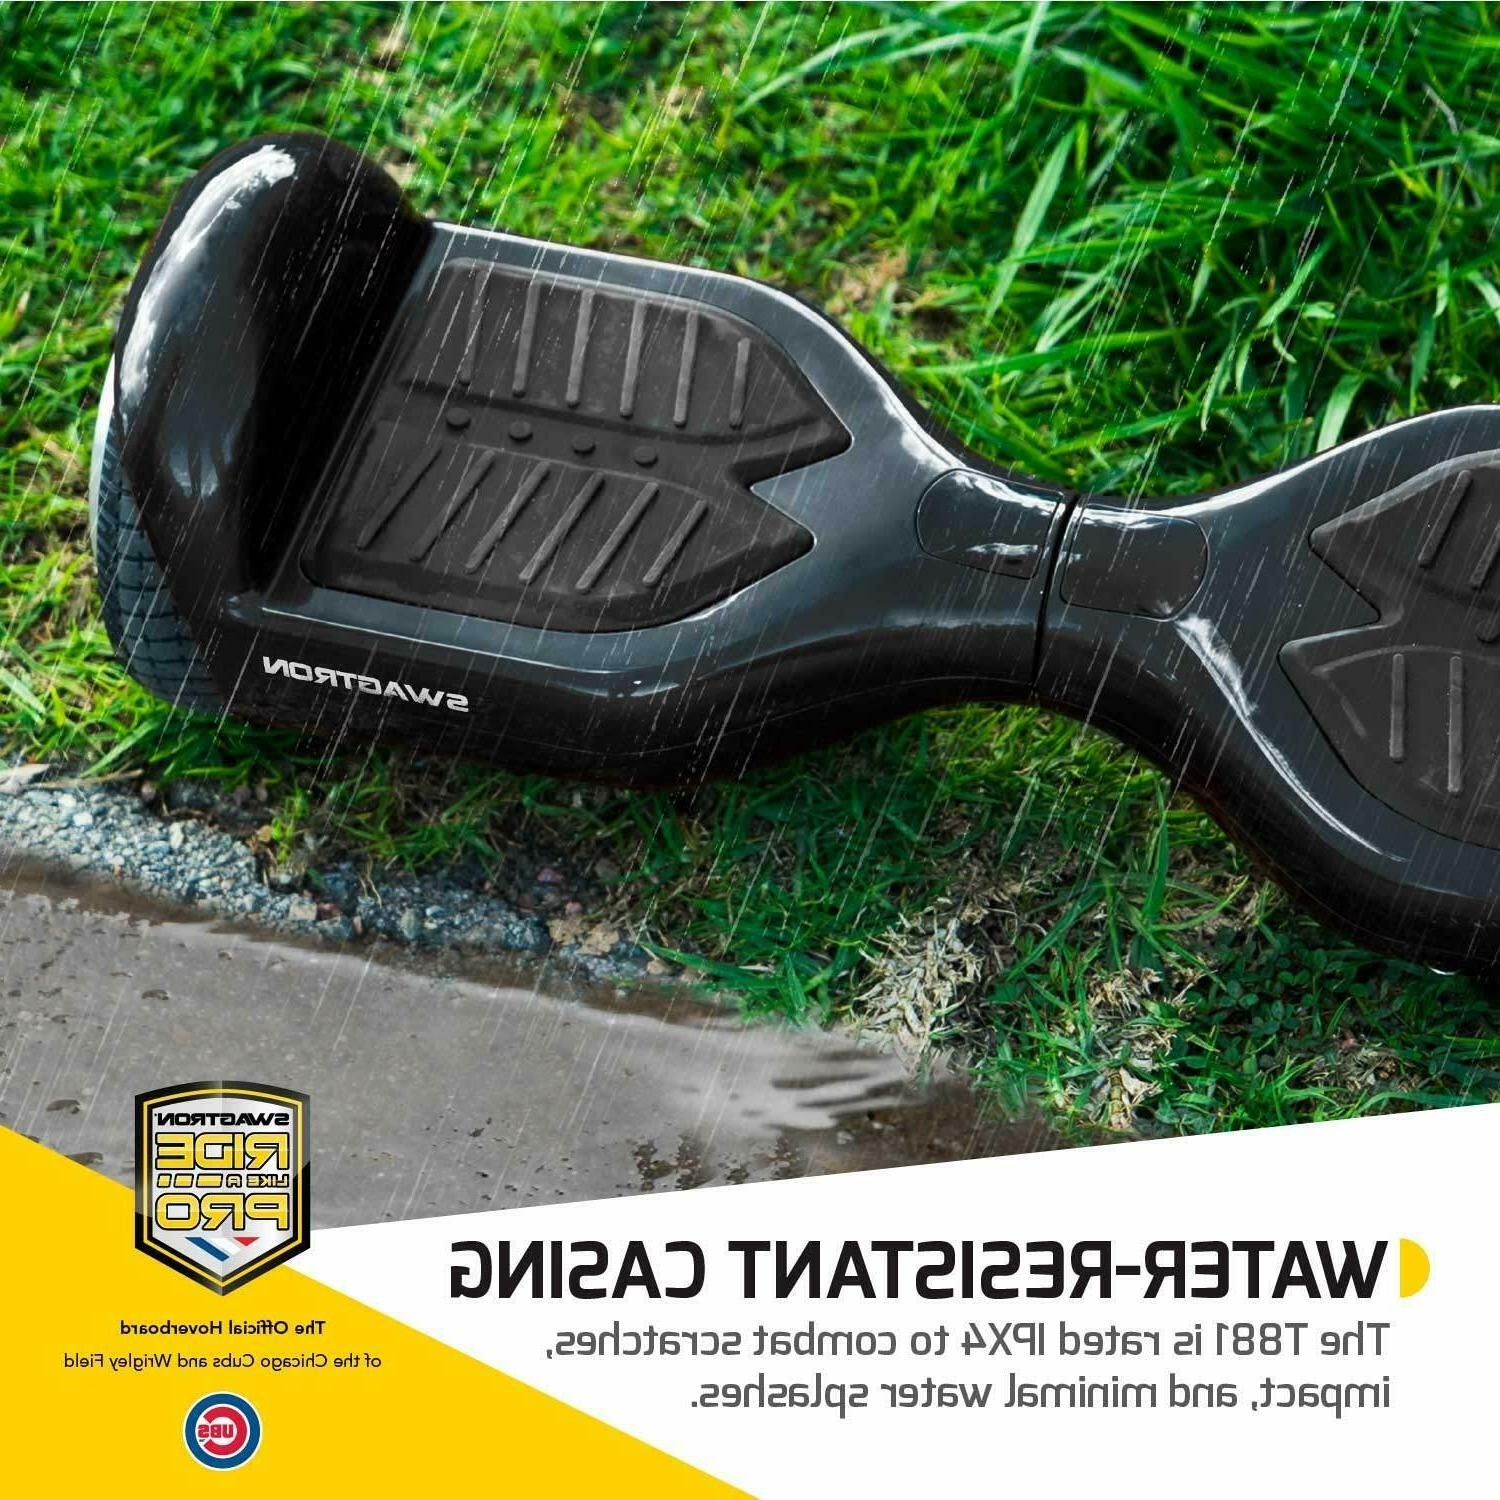 Refurbished Swagtron T881 Lithium-Free UL2272 Hoverboard 250W